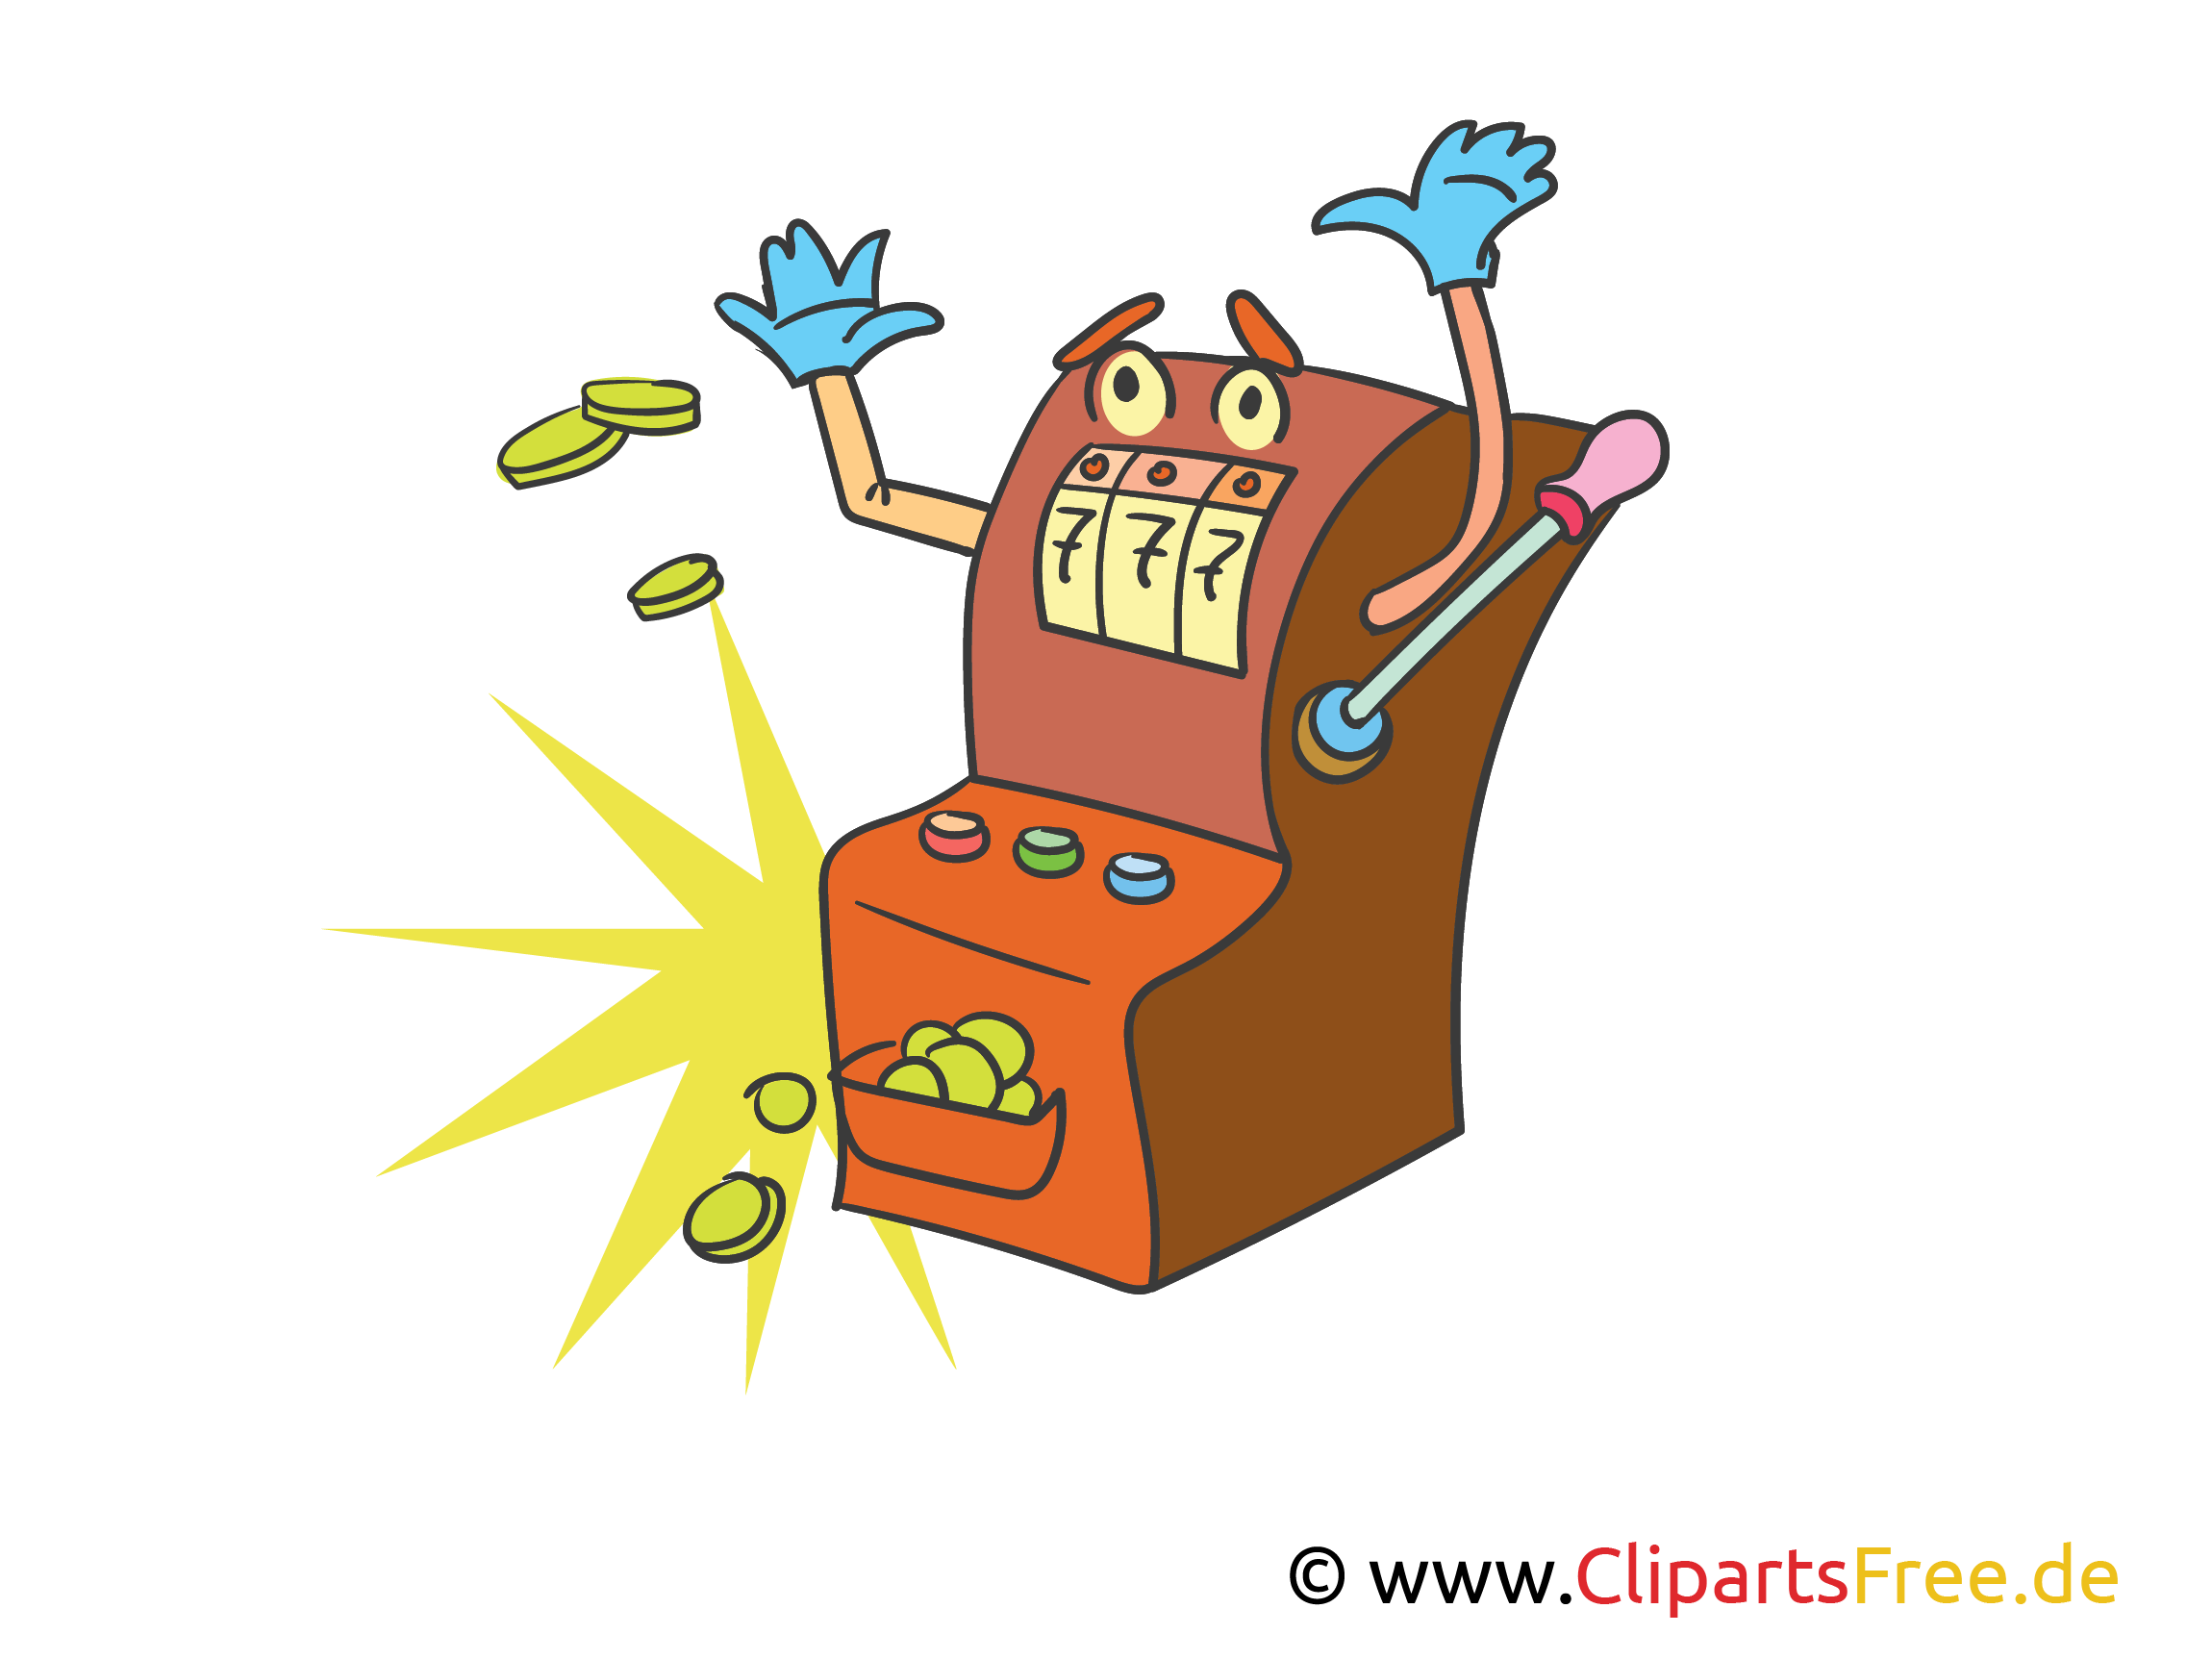 Spielautomat in Casino Clipart, Bild, Illustration